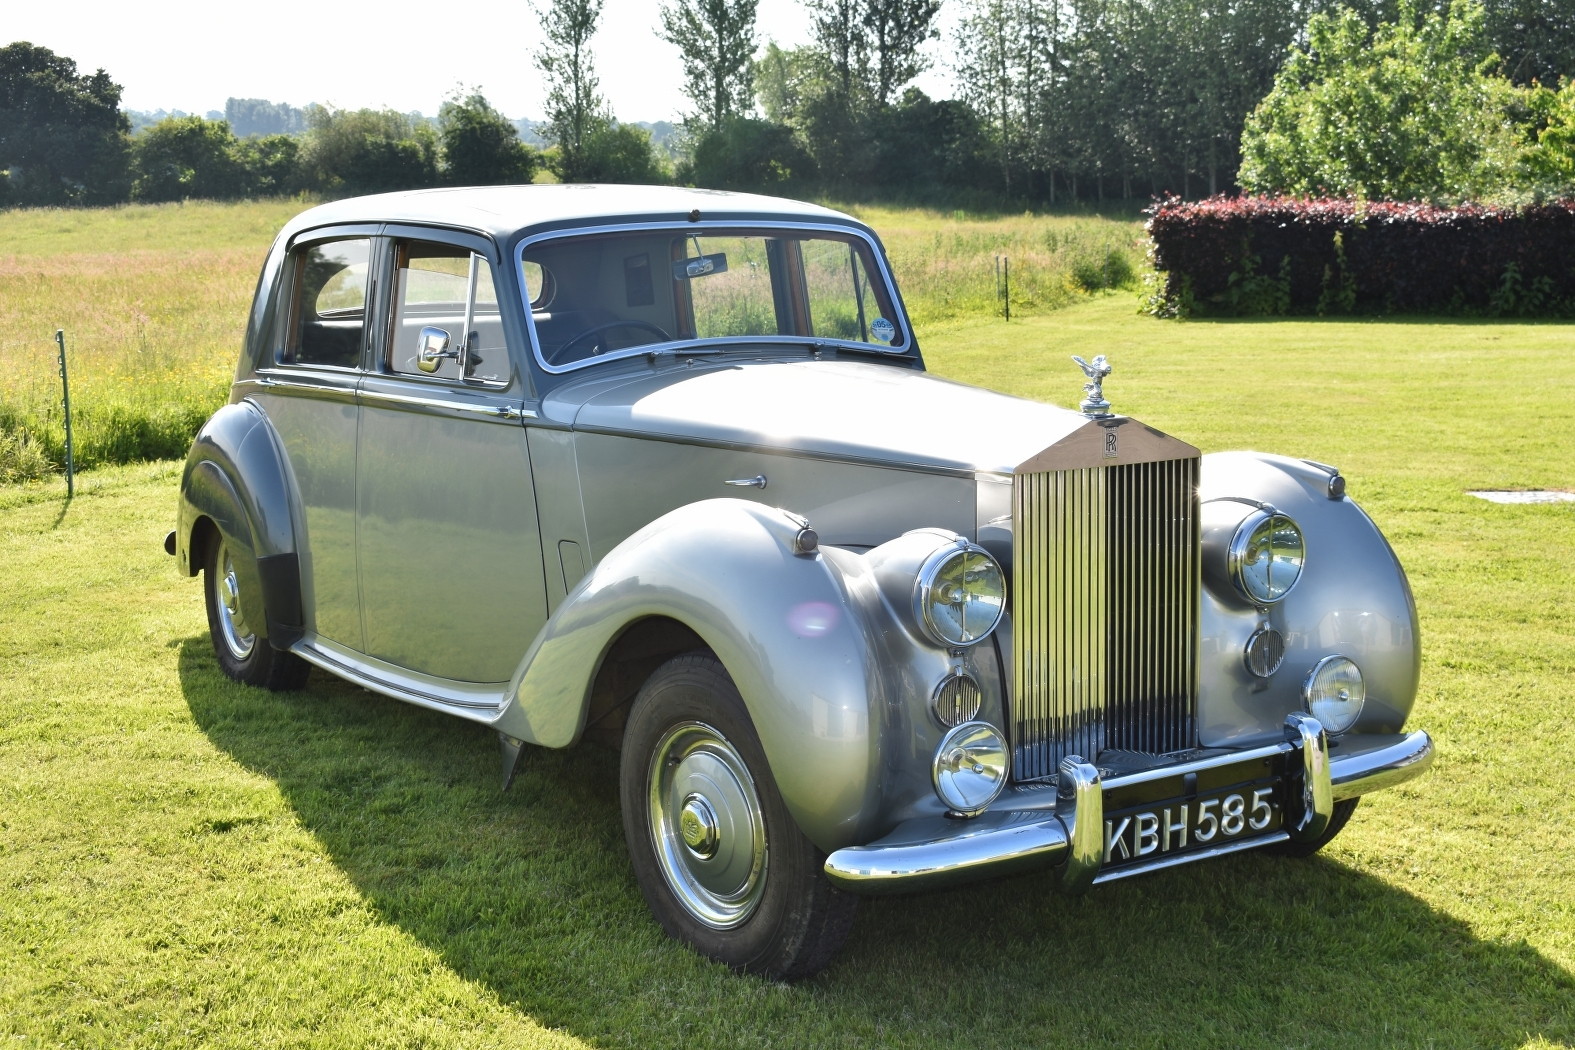 SILVER ROLLS: The 1951 Rolls-Royce Silver Dawn being sold in the Charterhouse auction of classic & vintage cars on Sunday, July 15, £34,000-38,000